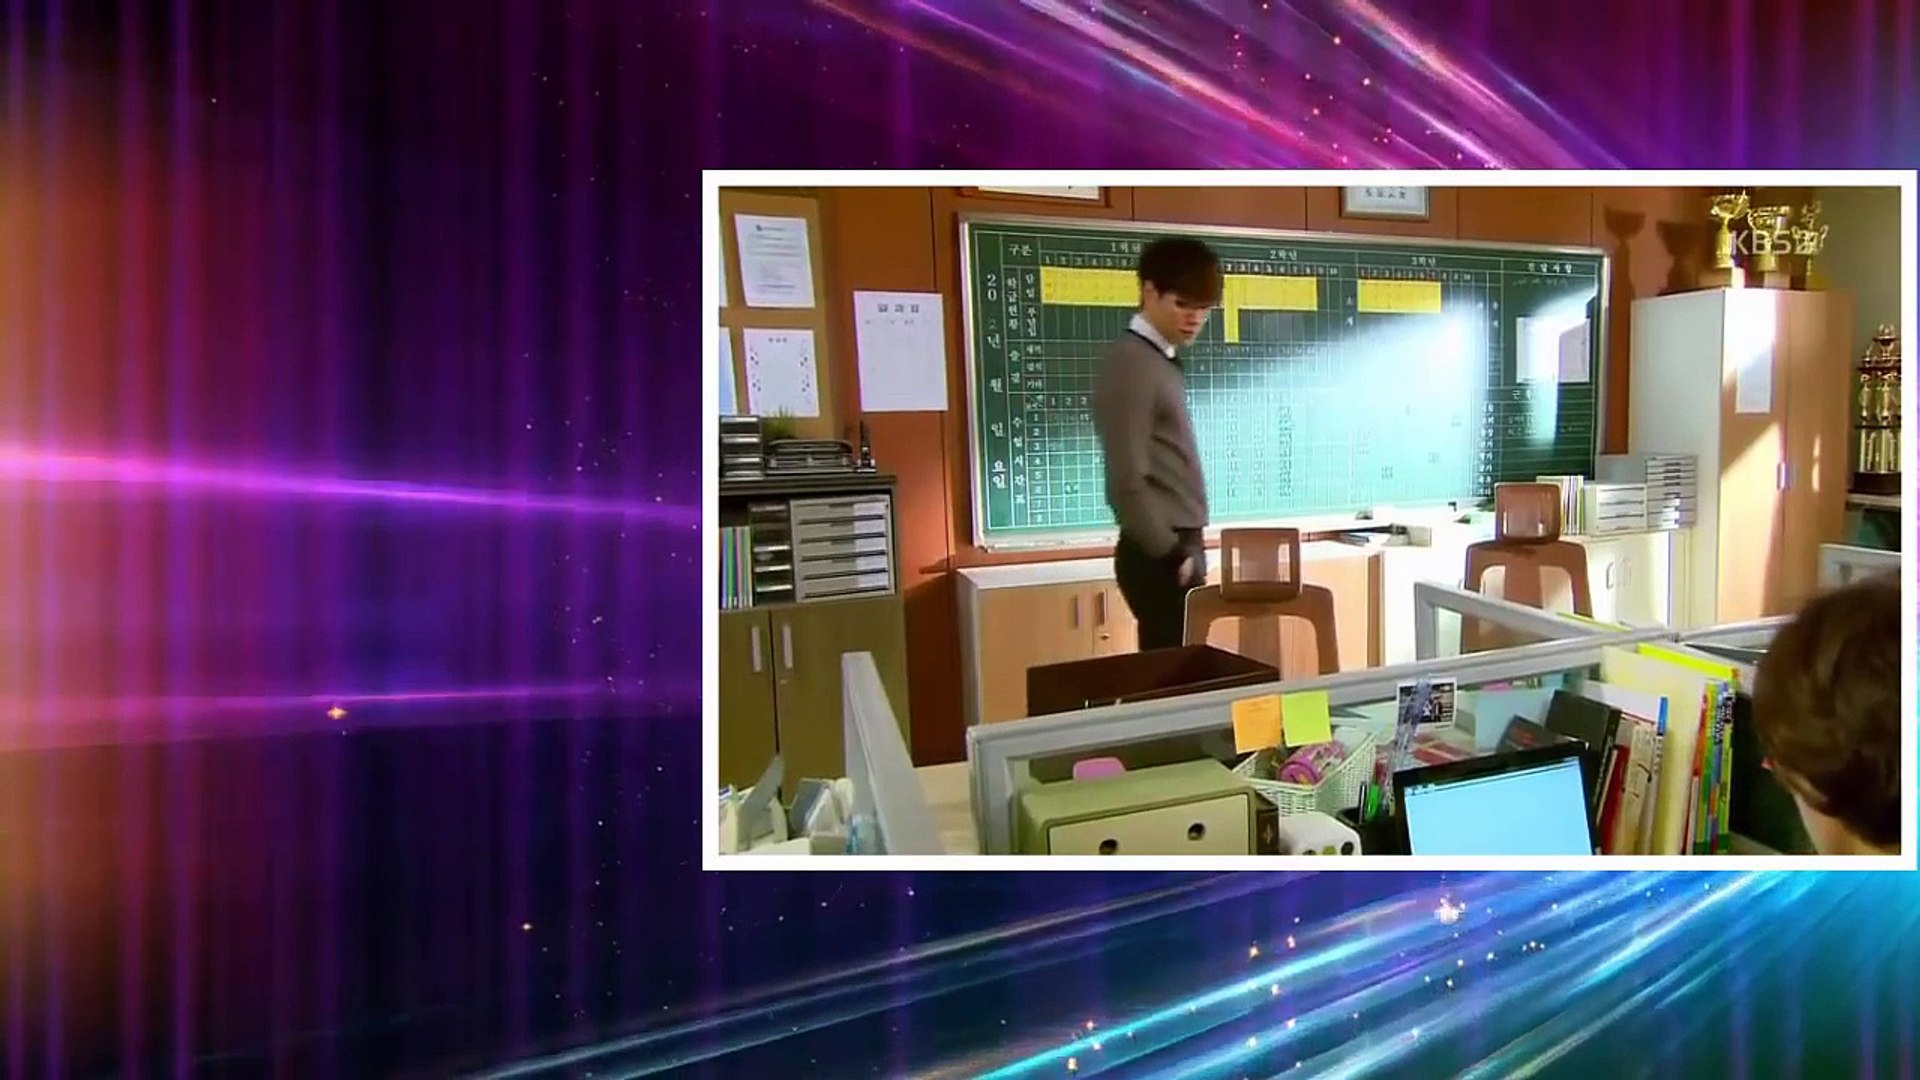 School 2013 Ep 12 sub eng, Online free tv,tv show watch hd 2017 part 1/2